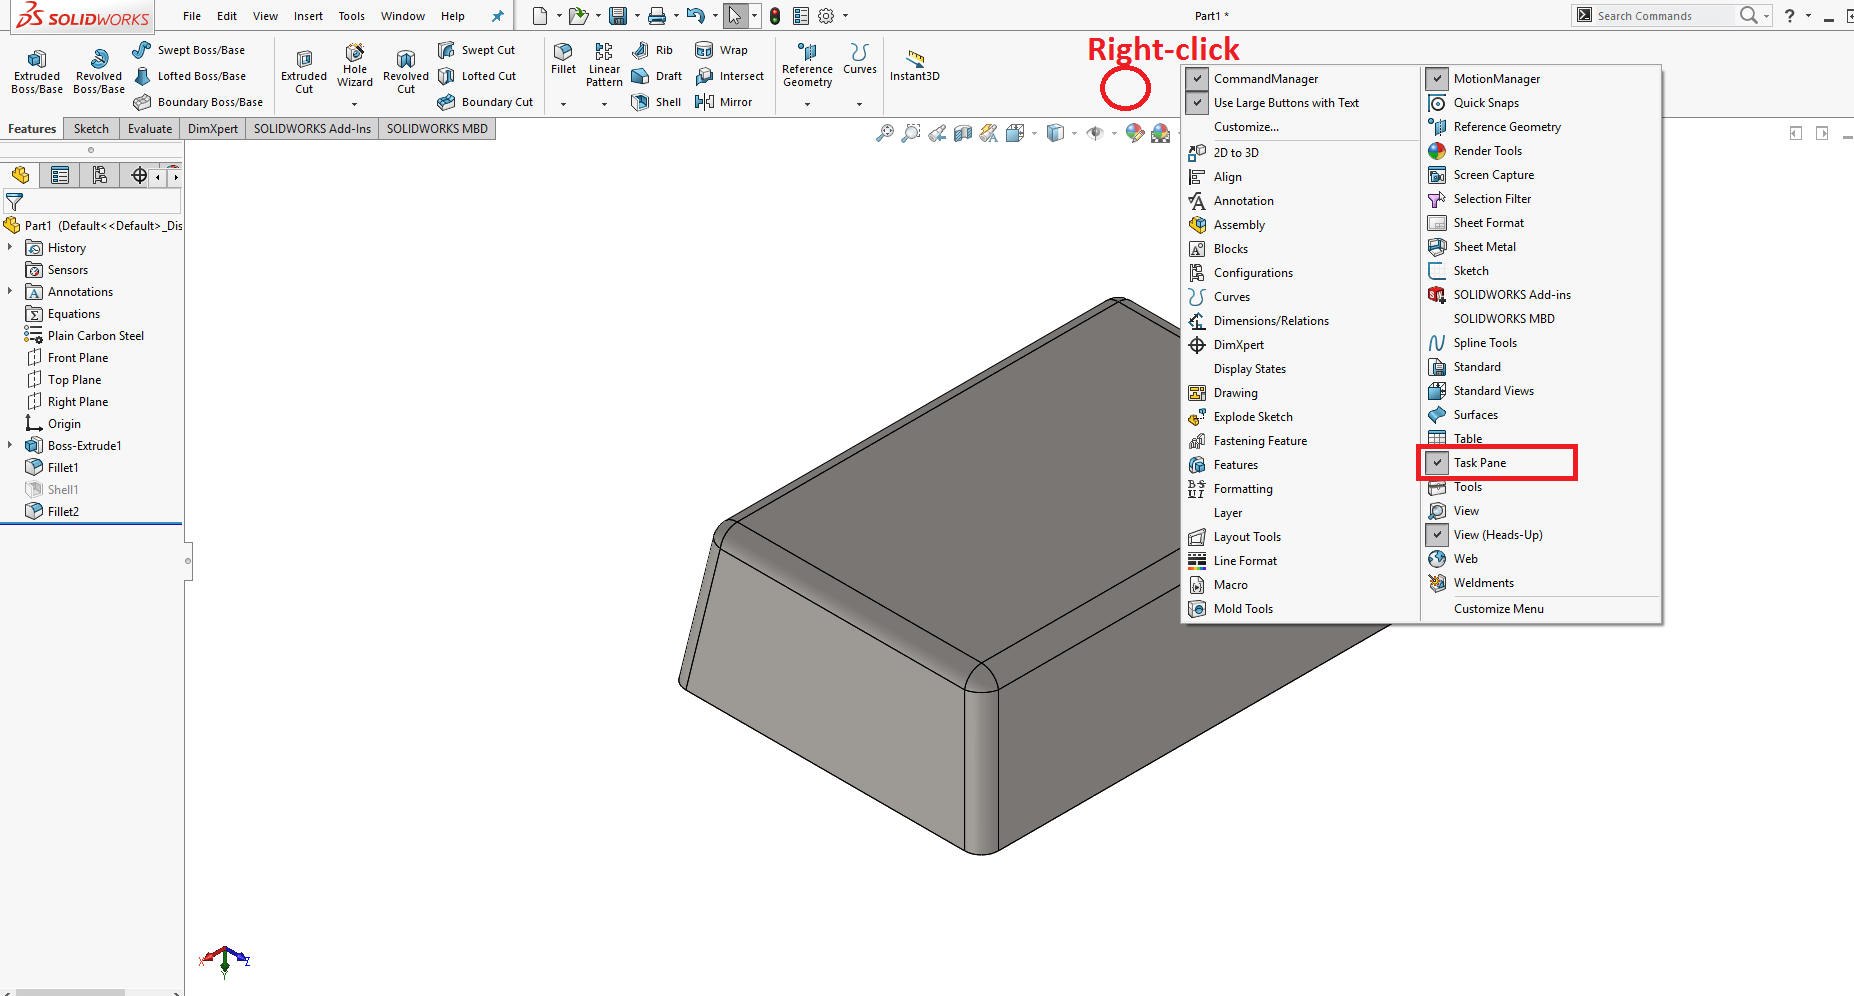 scene tool is missing sketchup